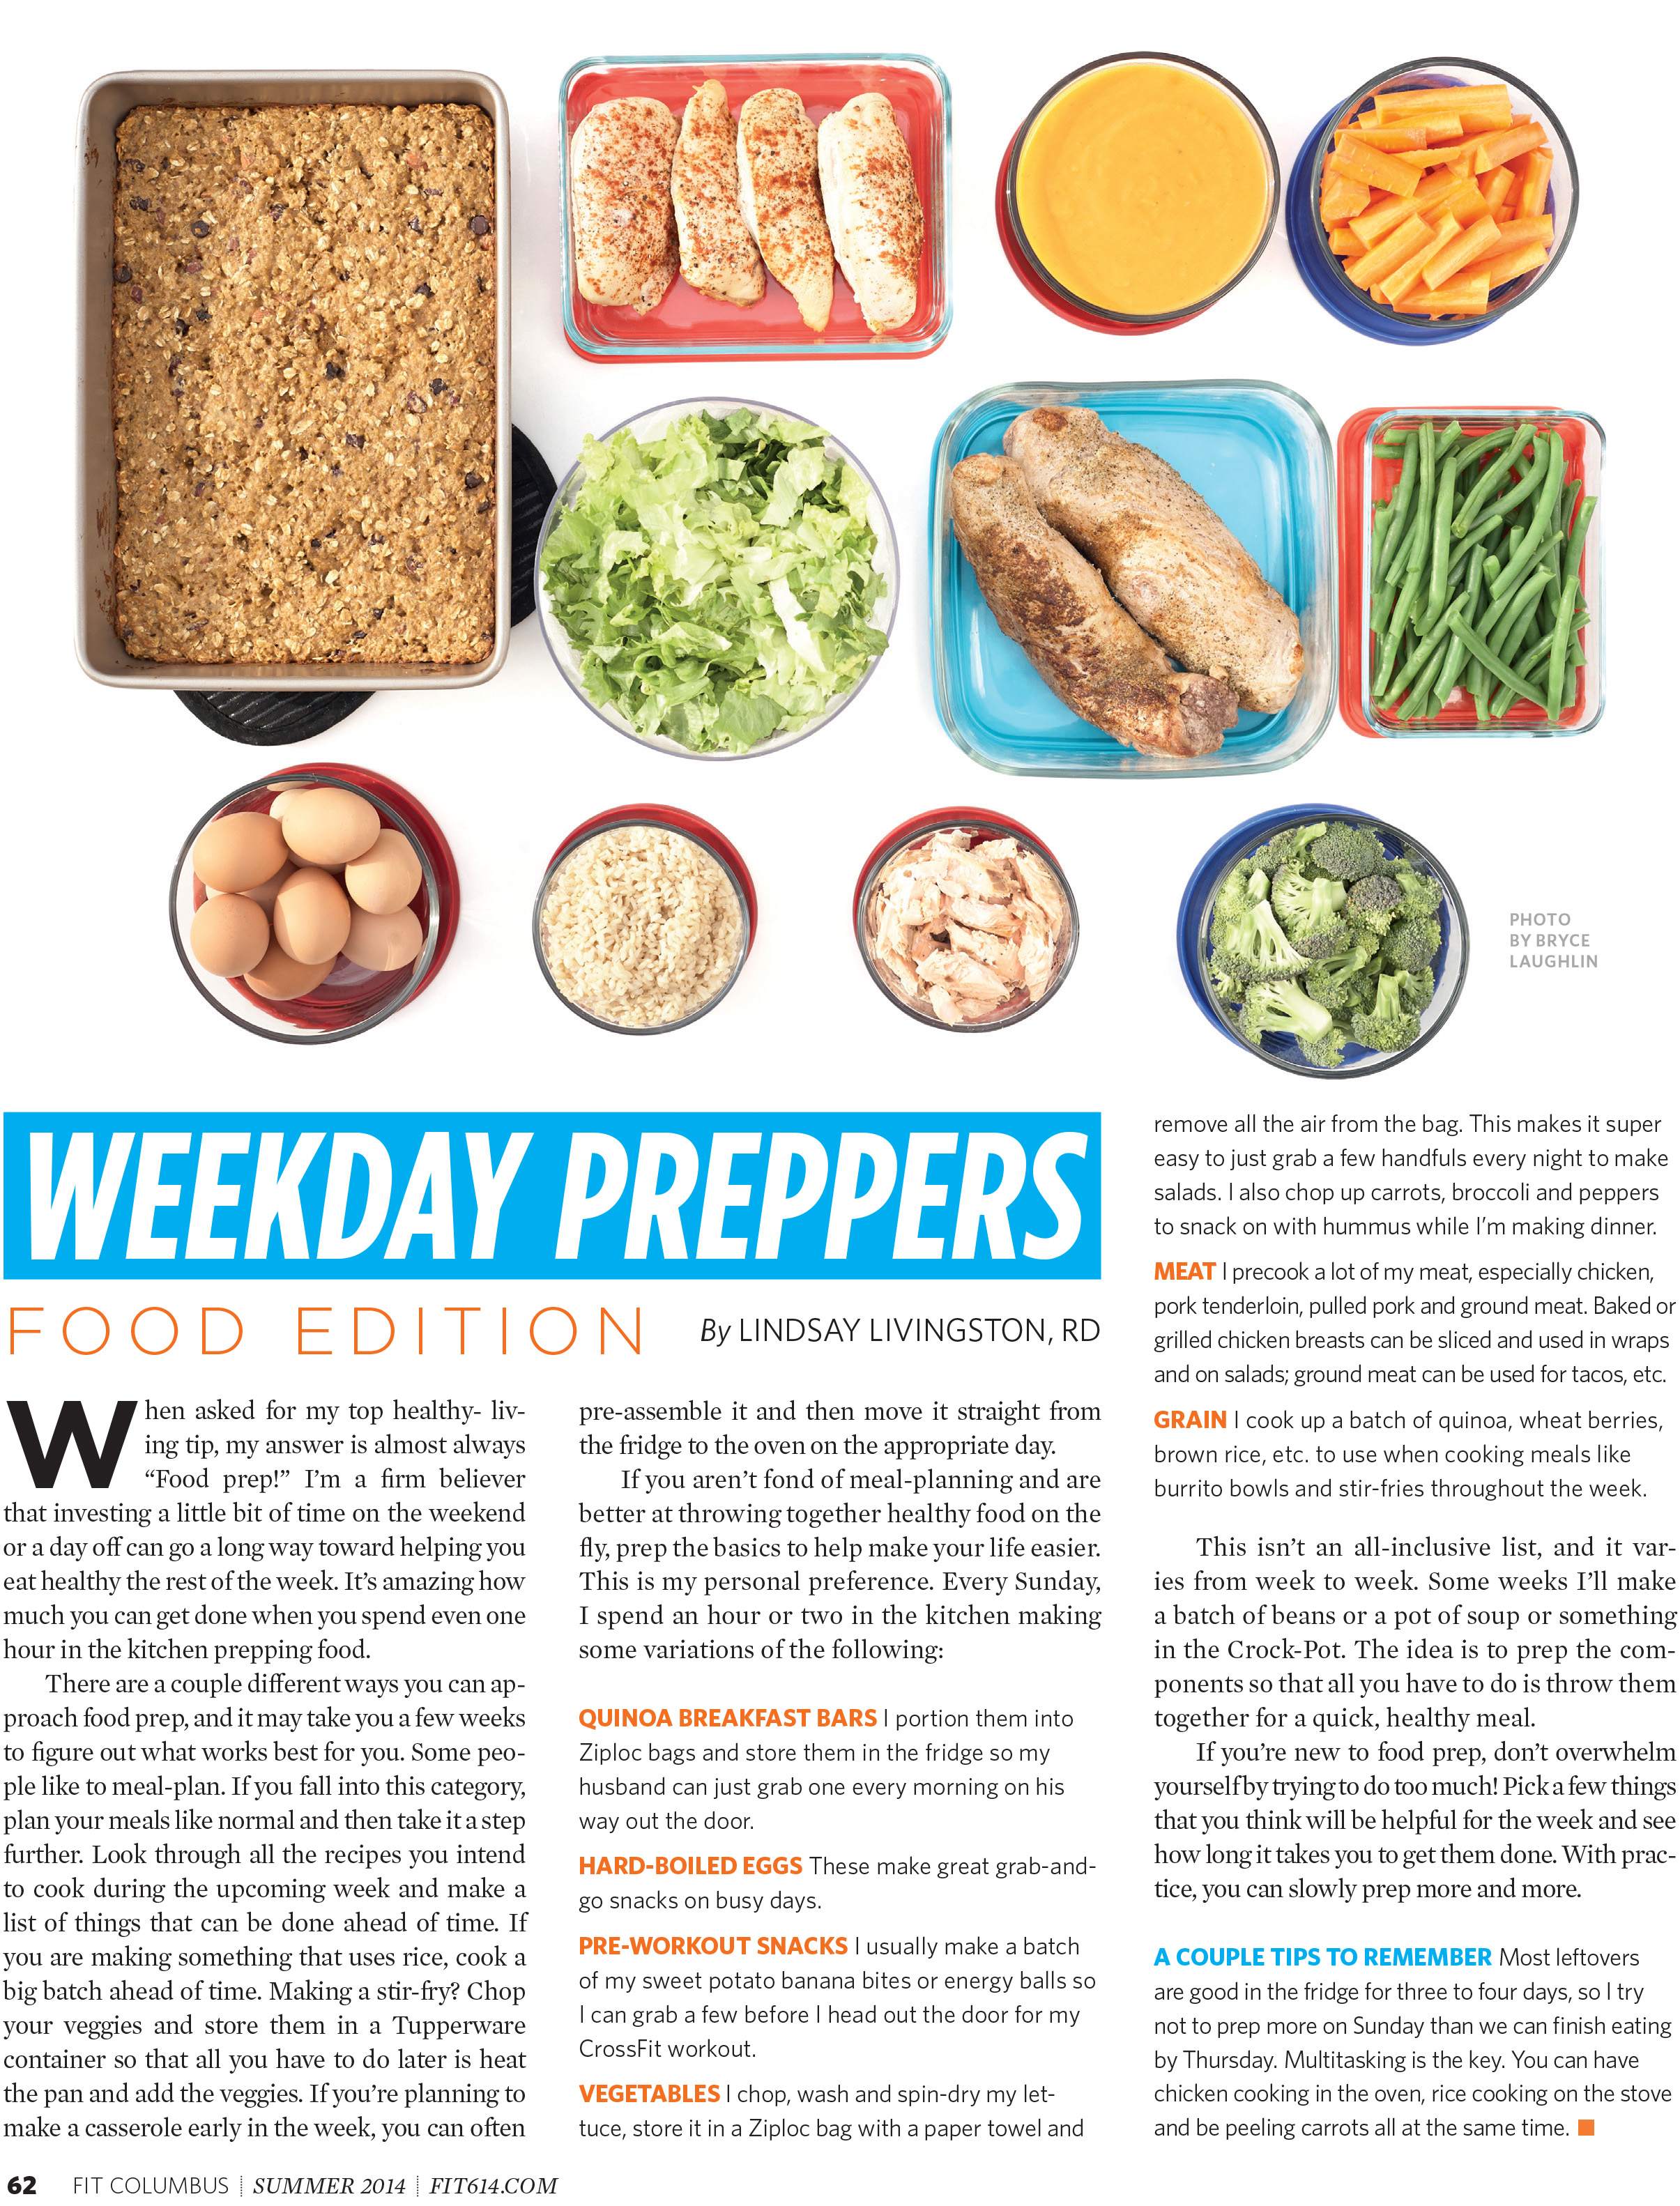 Meal Preppers Editorial